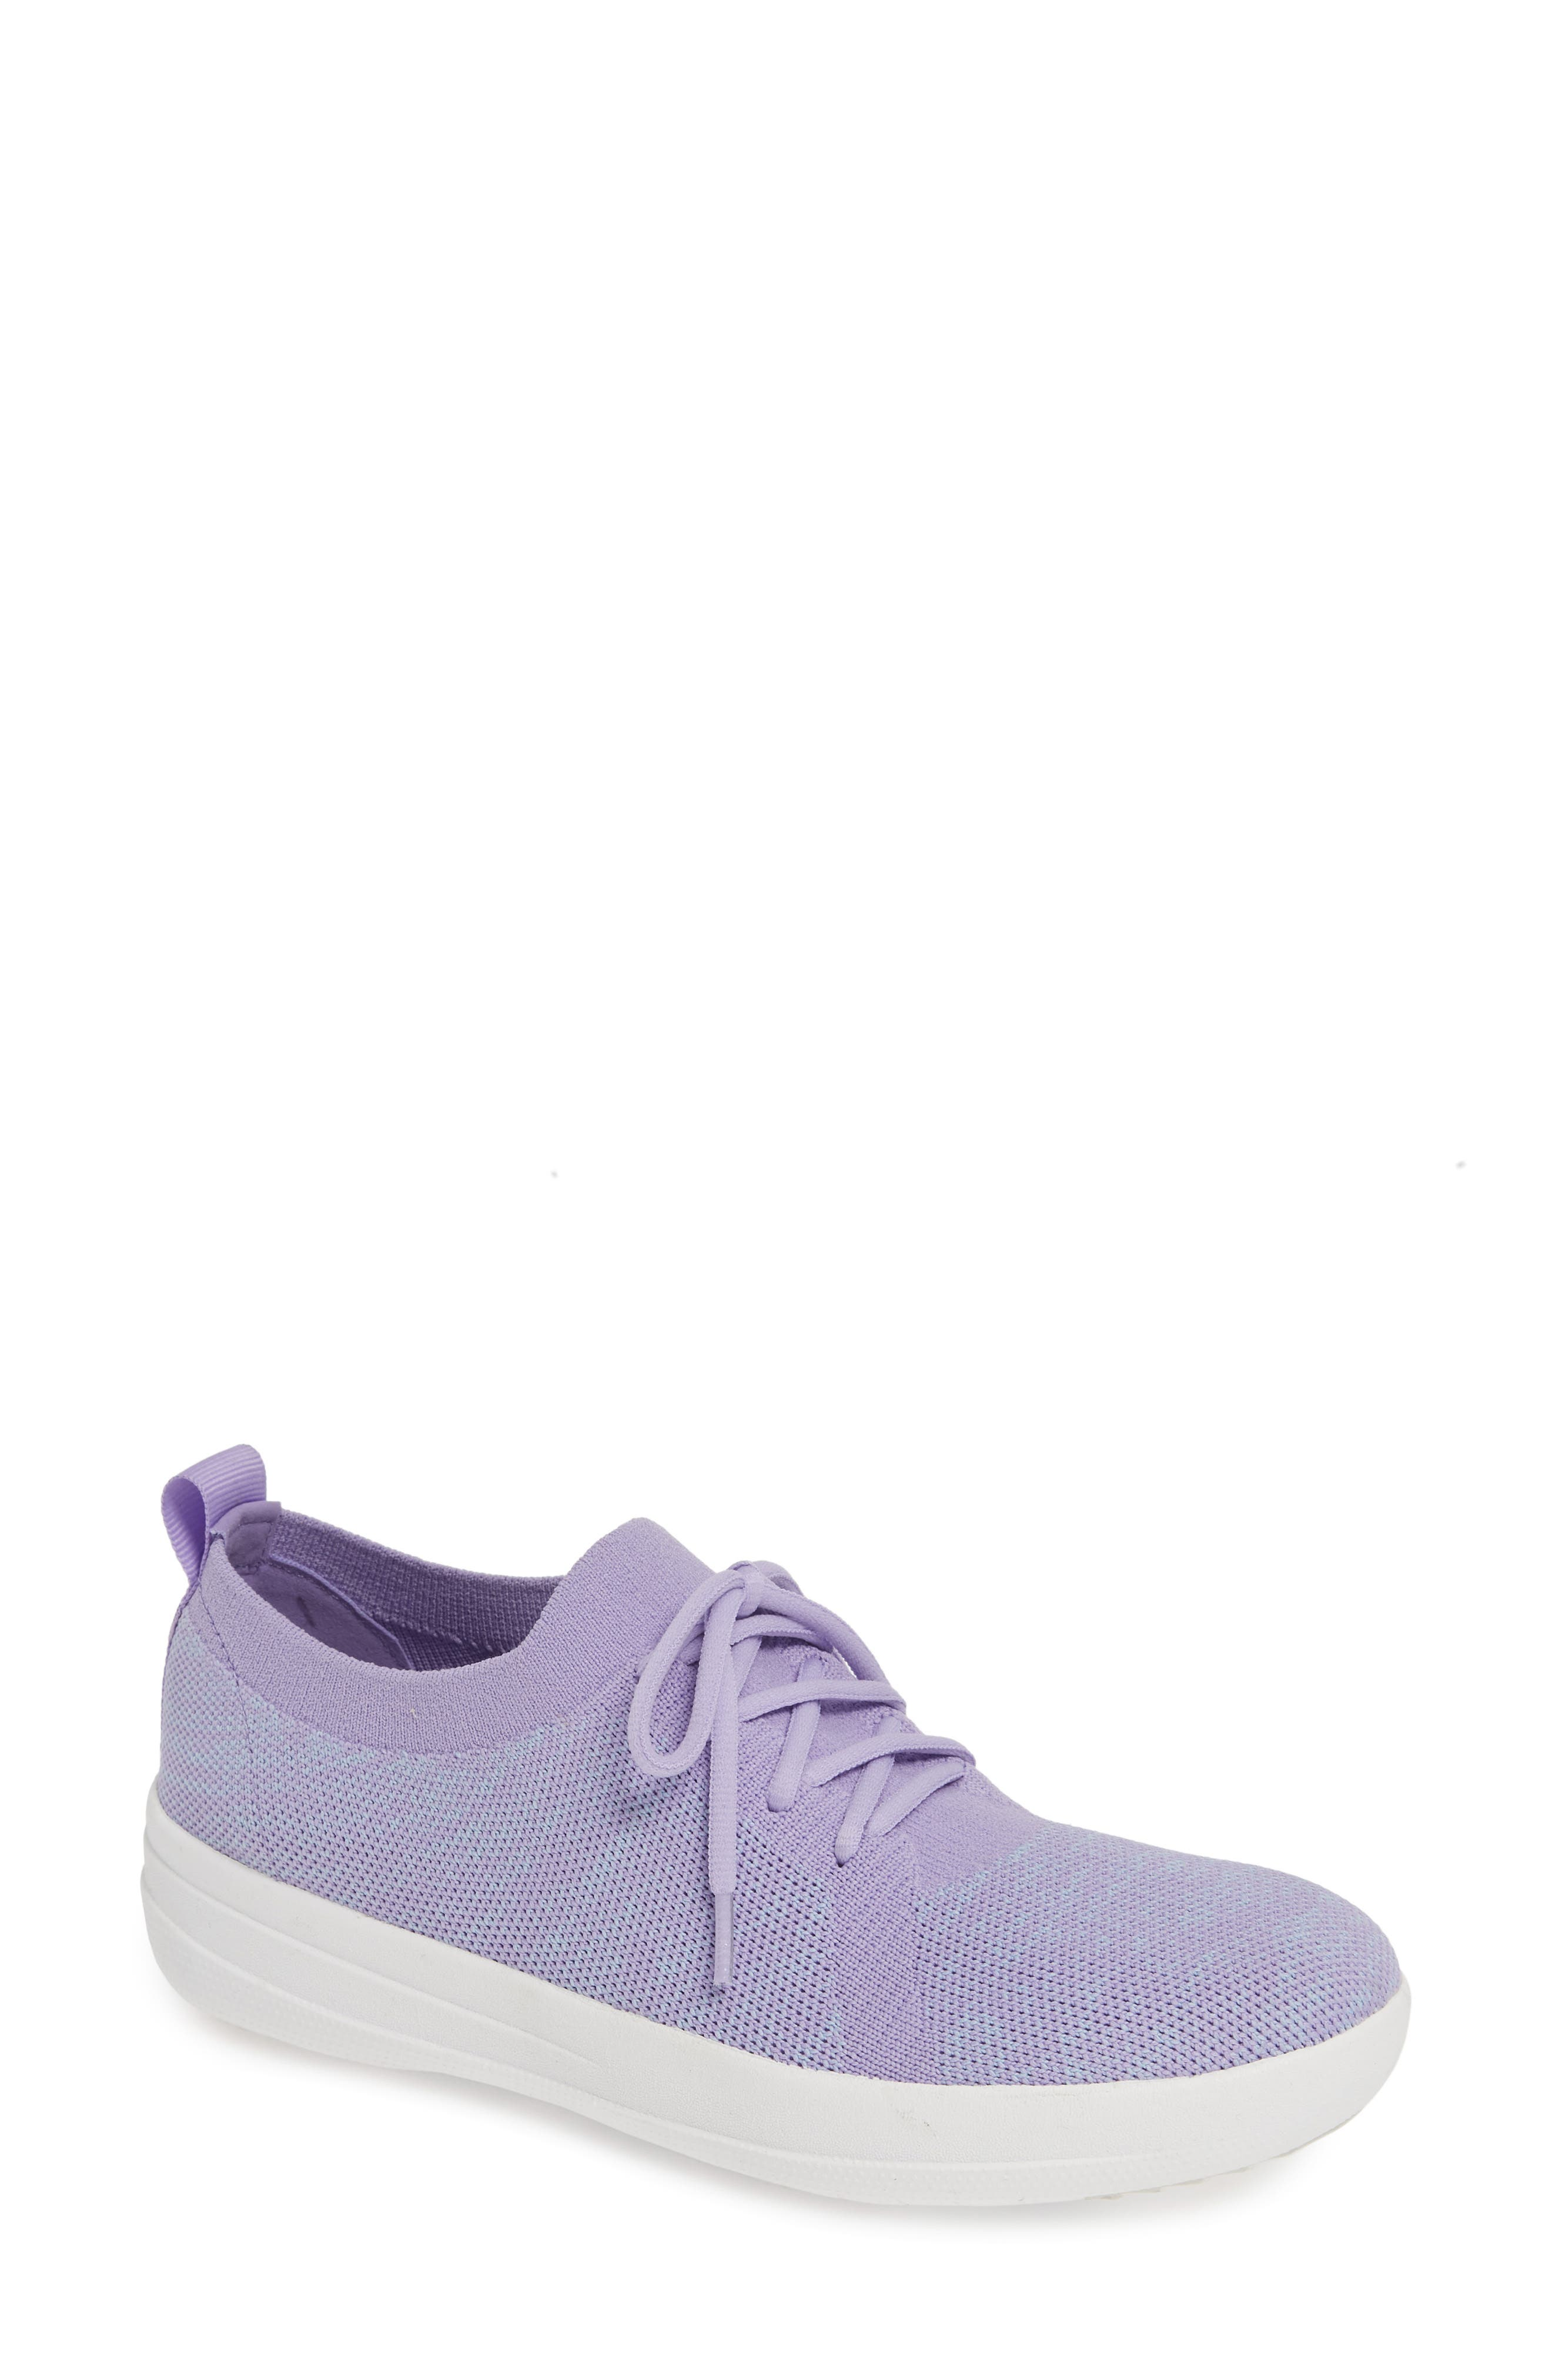 FITFLOP F-Sporty Uberknit<sup>™</sup> Sneaker, Main, color, 535